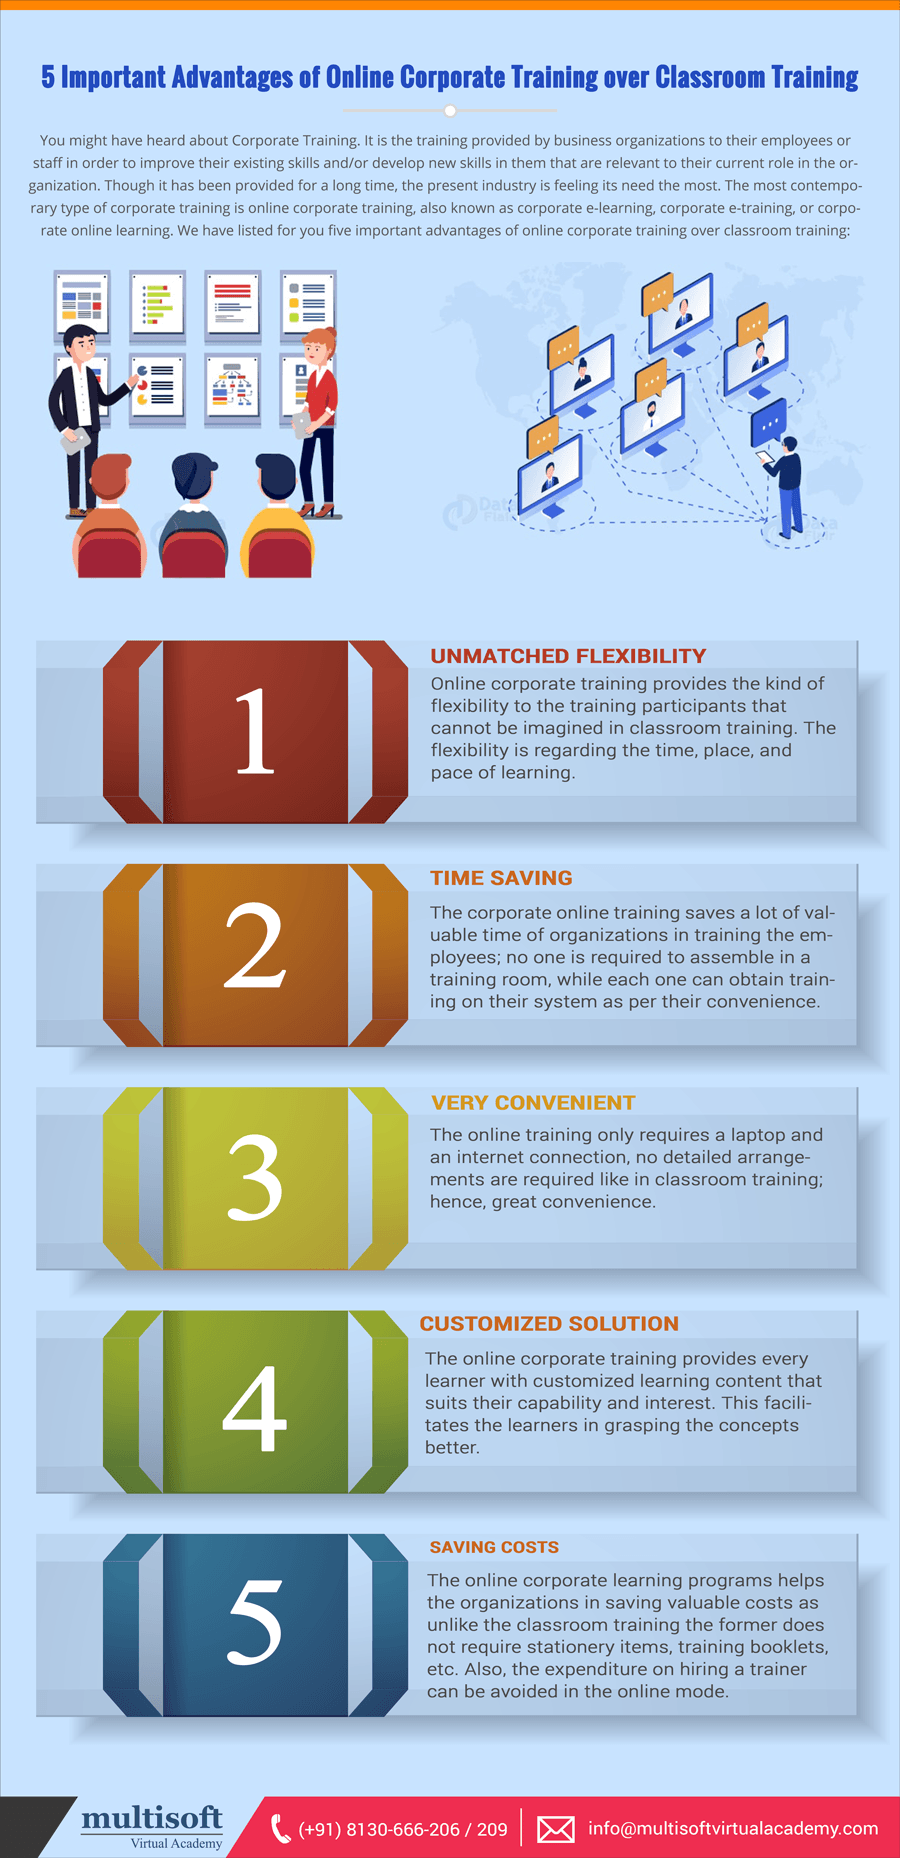 5 Important Advantages Of Online Corporate Training Over Classroom Training